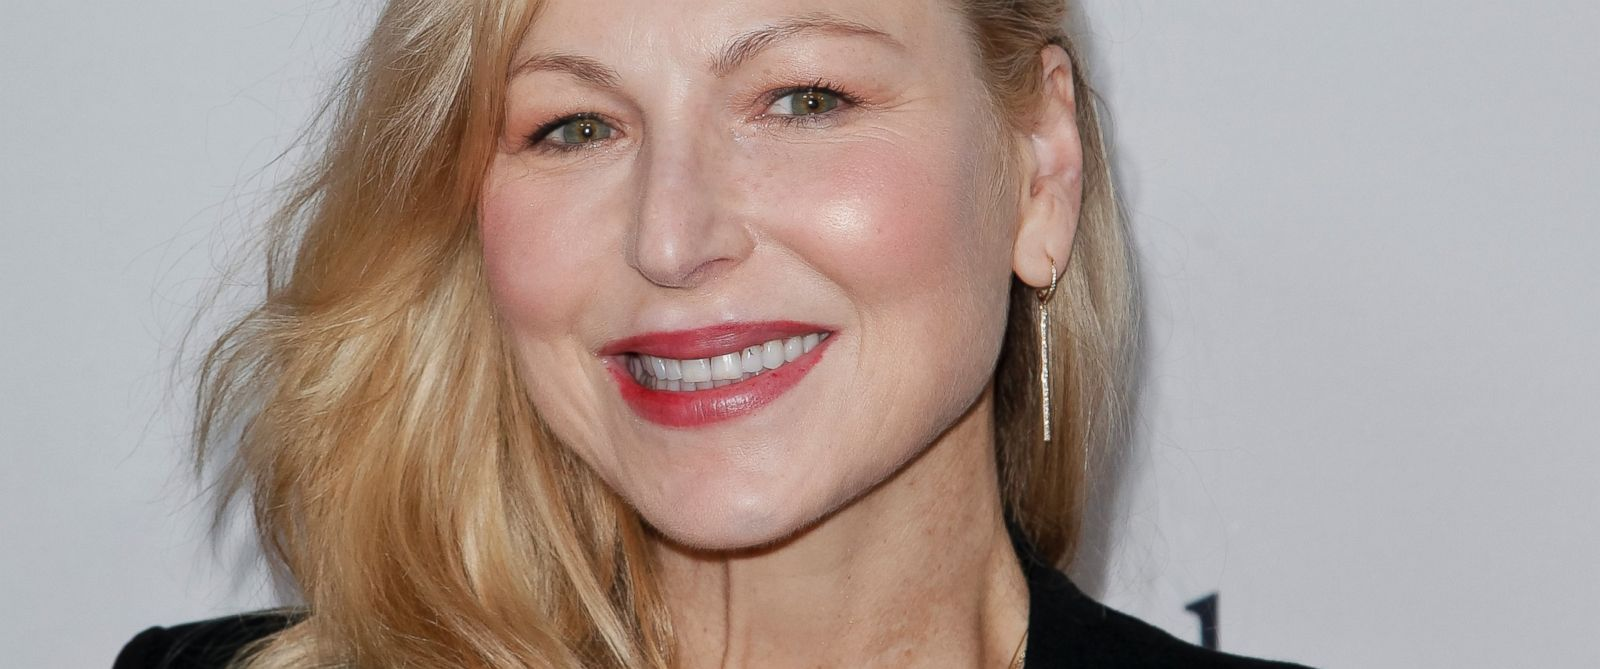 tatum muslim singles Jessica phyllis lange (/ l æ ŋ / born april 20, 1949) is an american film, television and theatre actressshe is the recipient of several awards, including two academy awards, one tony.